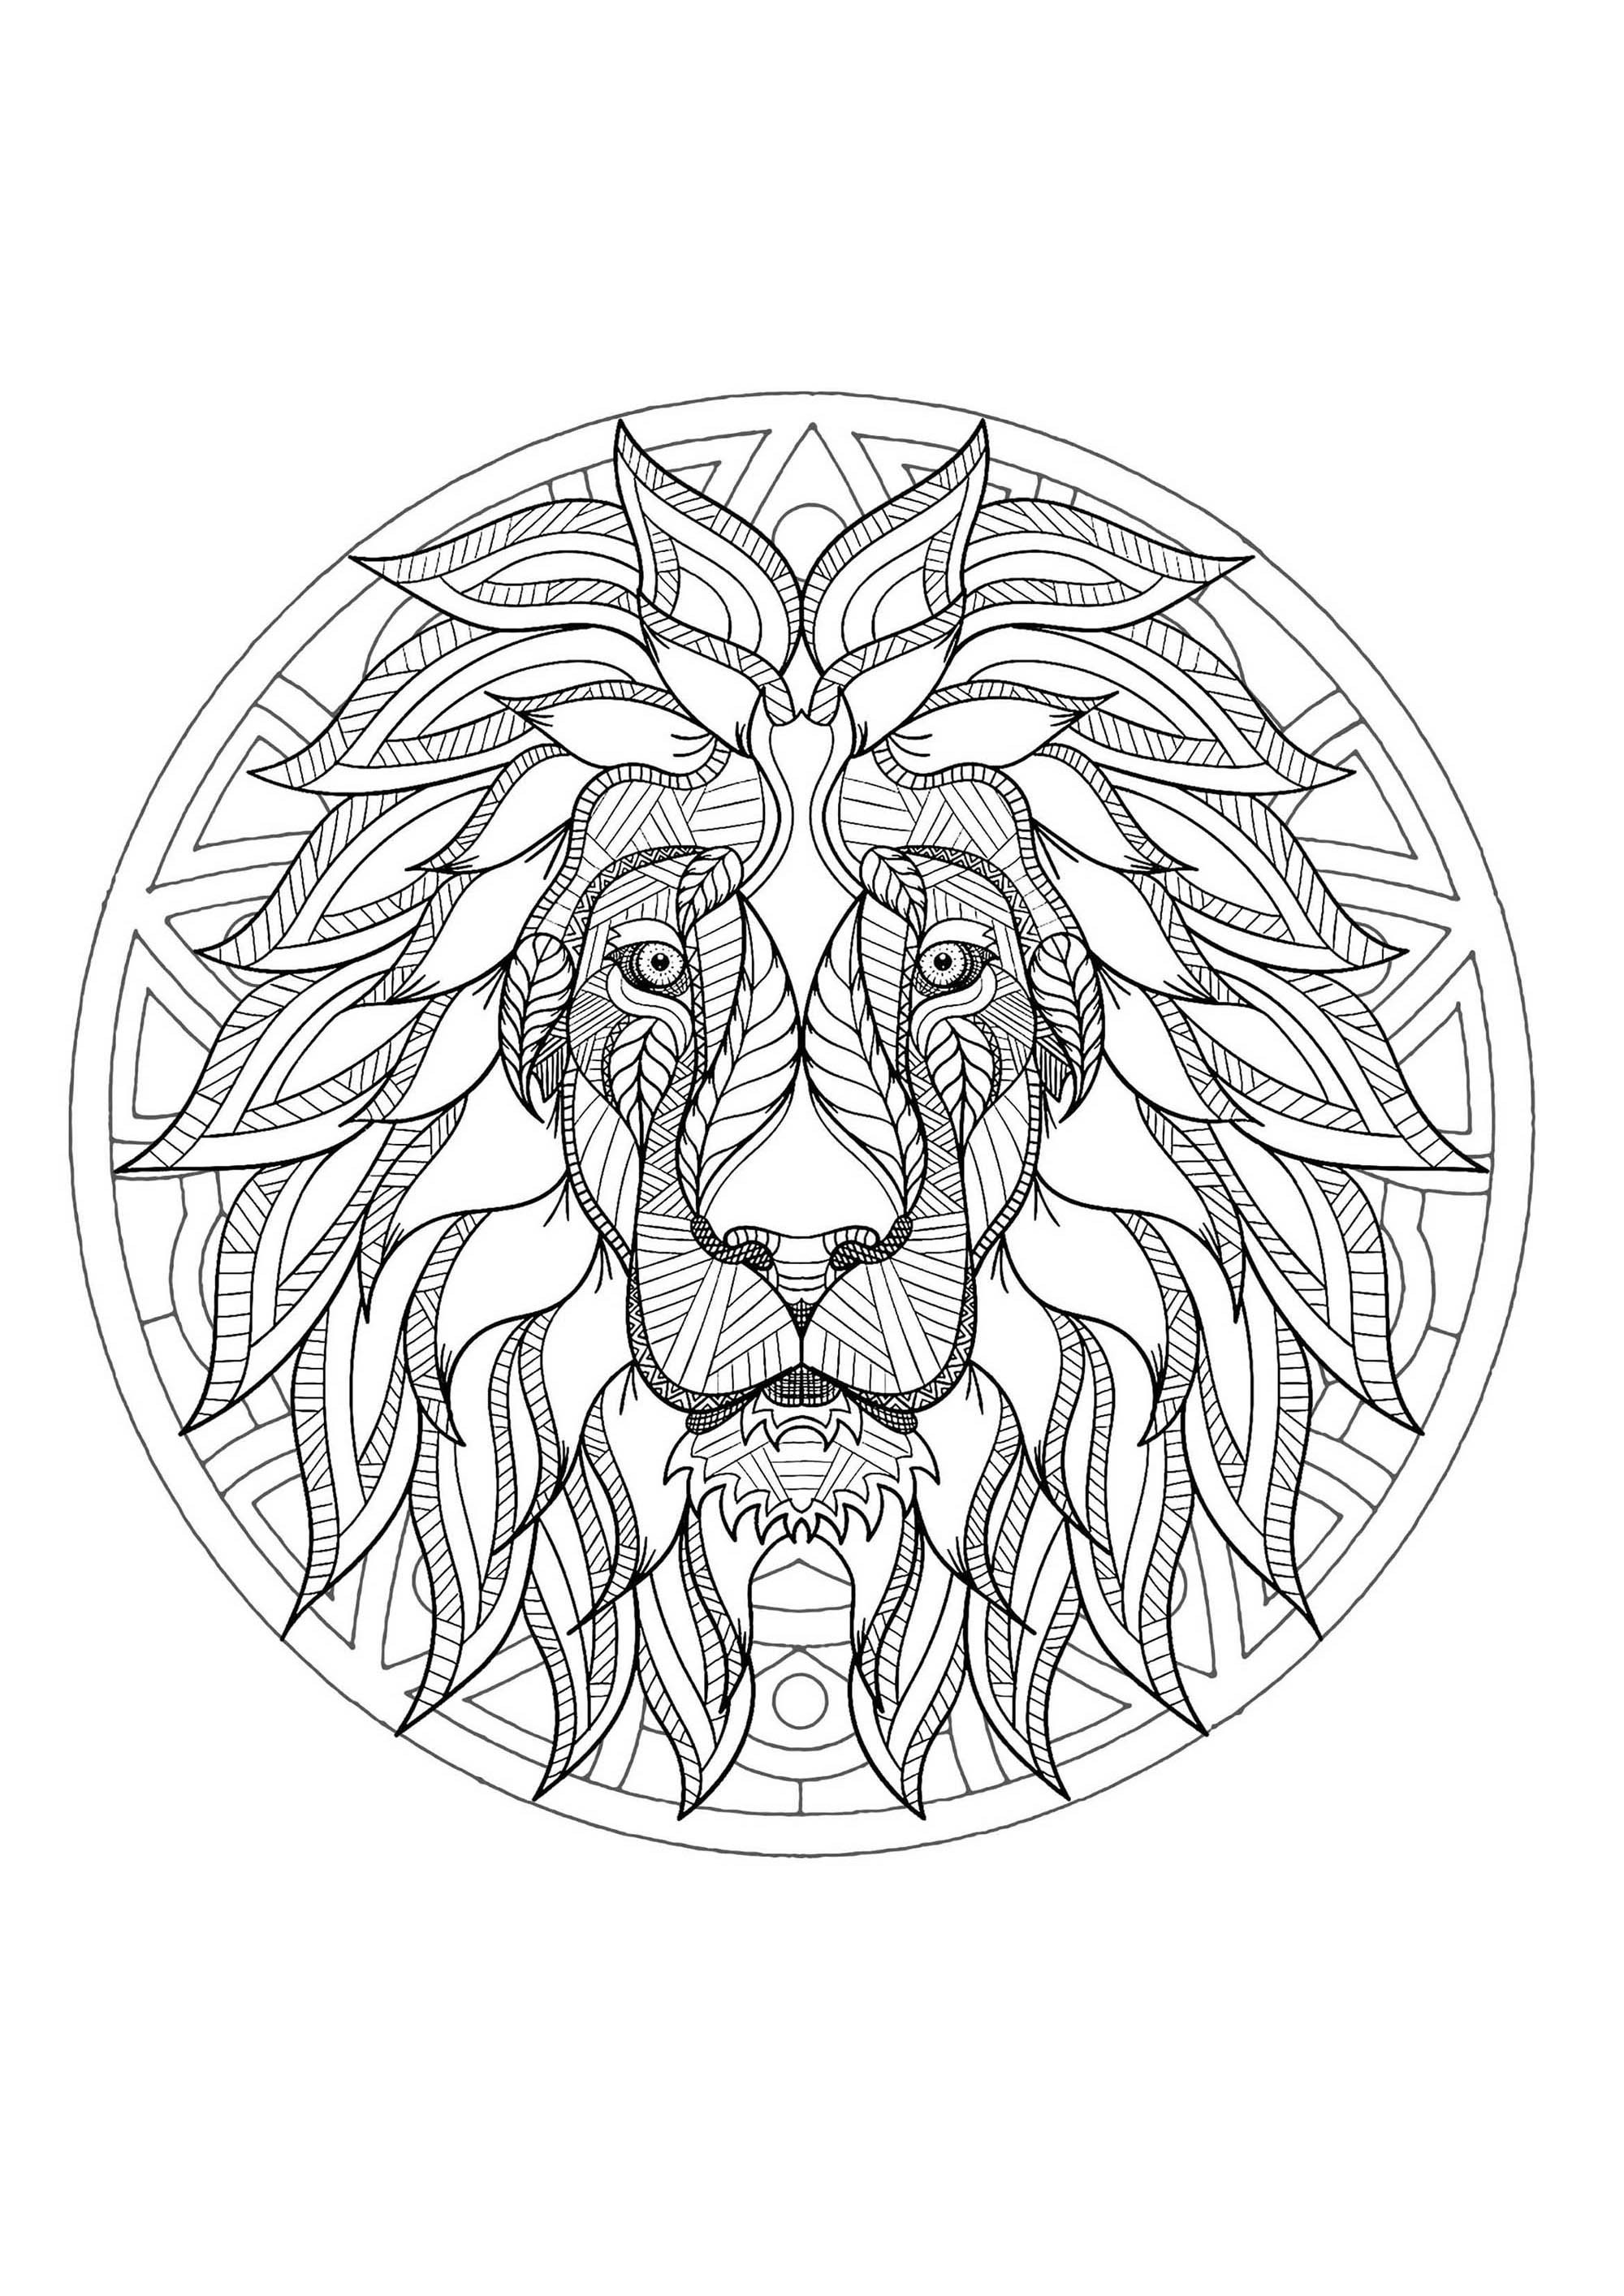 Mandala tete lion 3 - Mandalas - Coloriages difficiles pour adultes